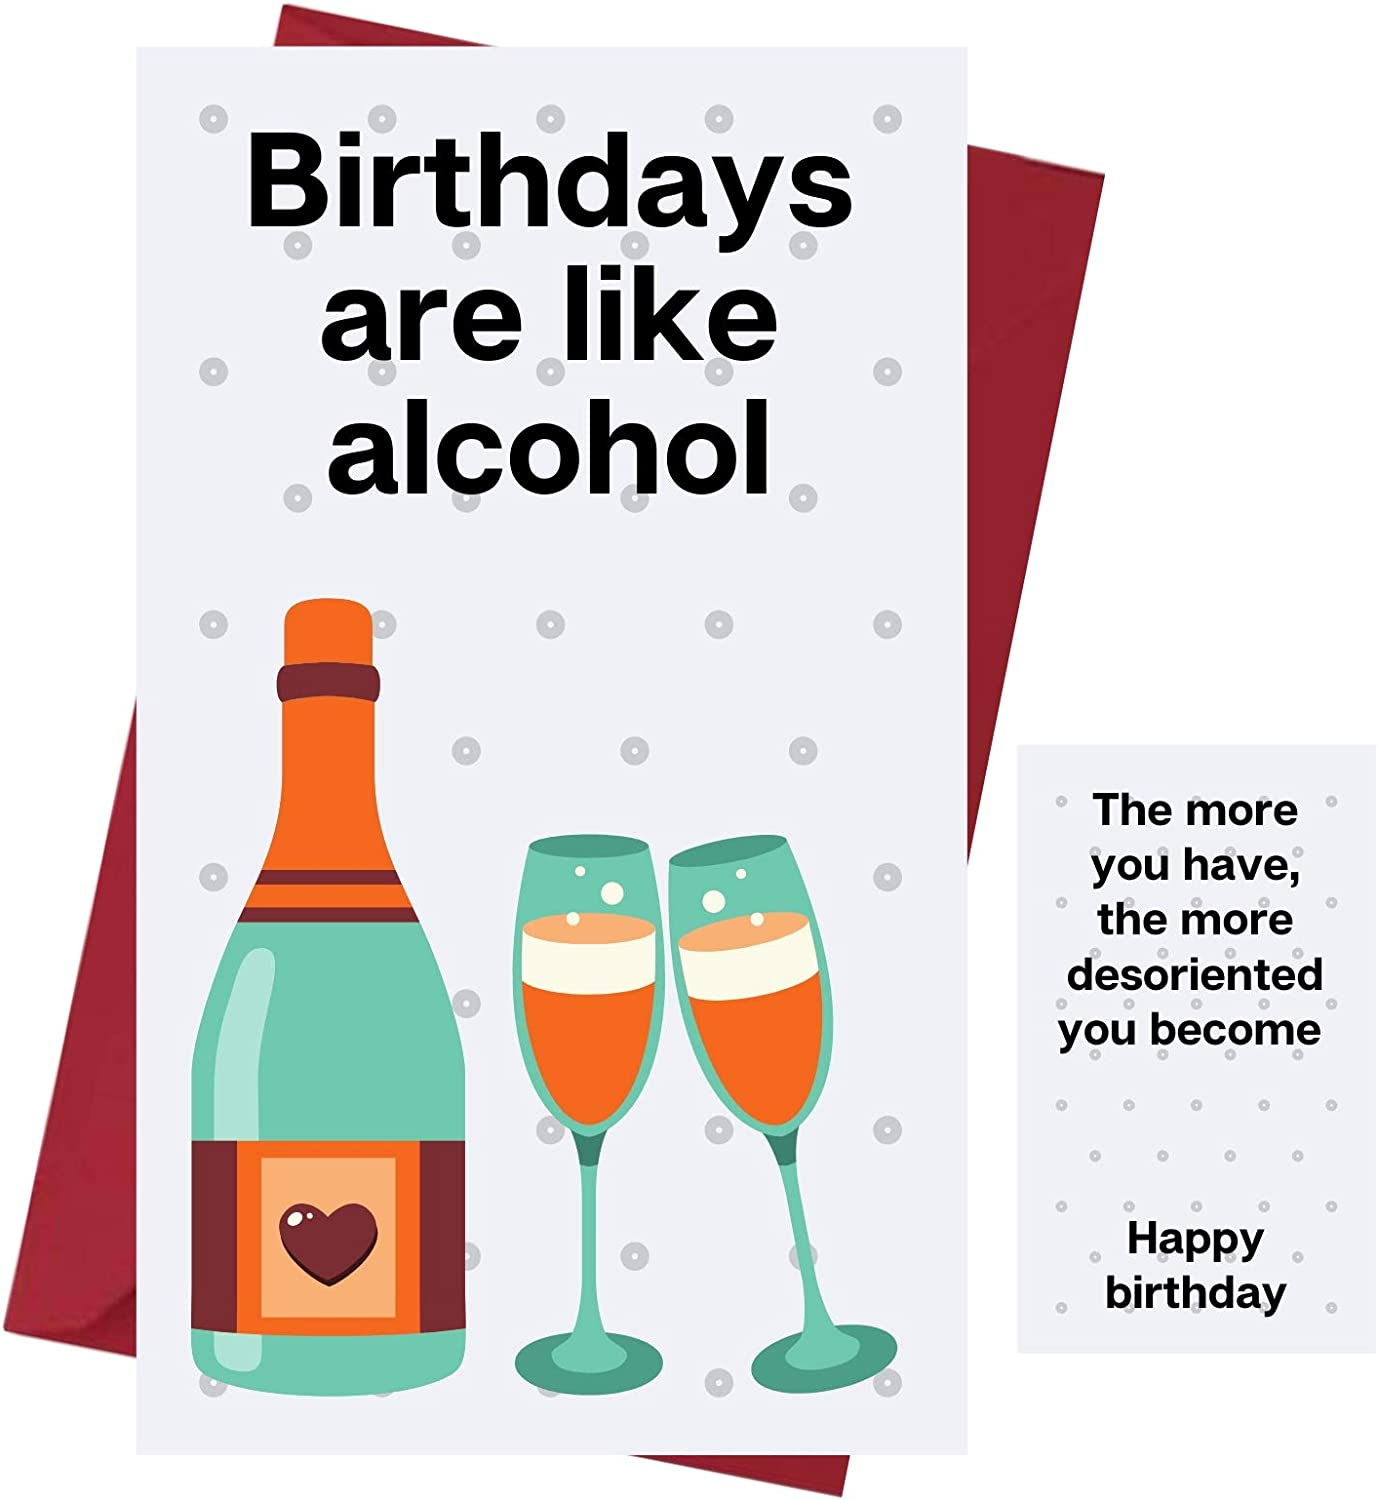 Amazon Com Funny Happy Birthday Card For Men Women Birthday Card For Alcohol Drinkers Prank Birthday Card Funny Birthday Card For Friends Family Coworkers Etc Alcohol Birthday